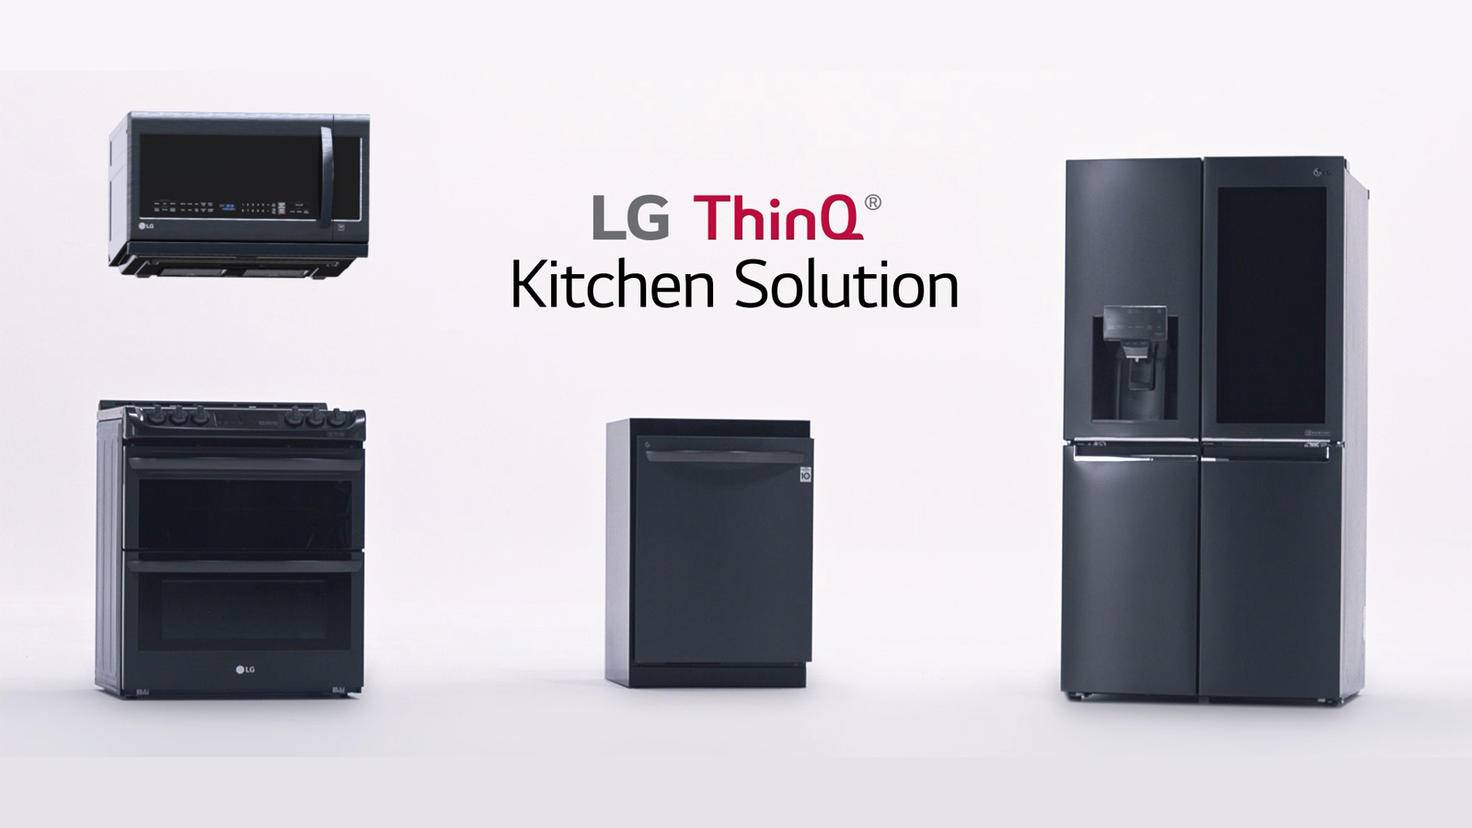 LG-ThinQ-Kitchen-Solution-Release